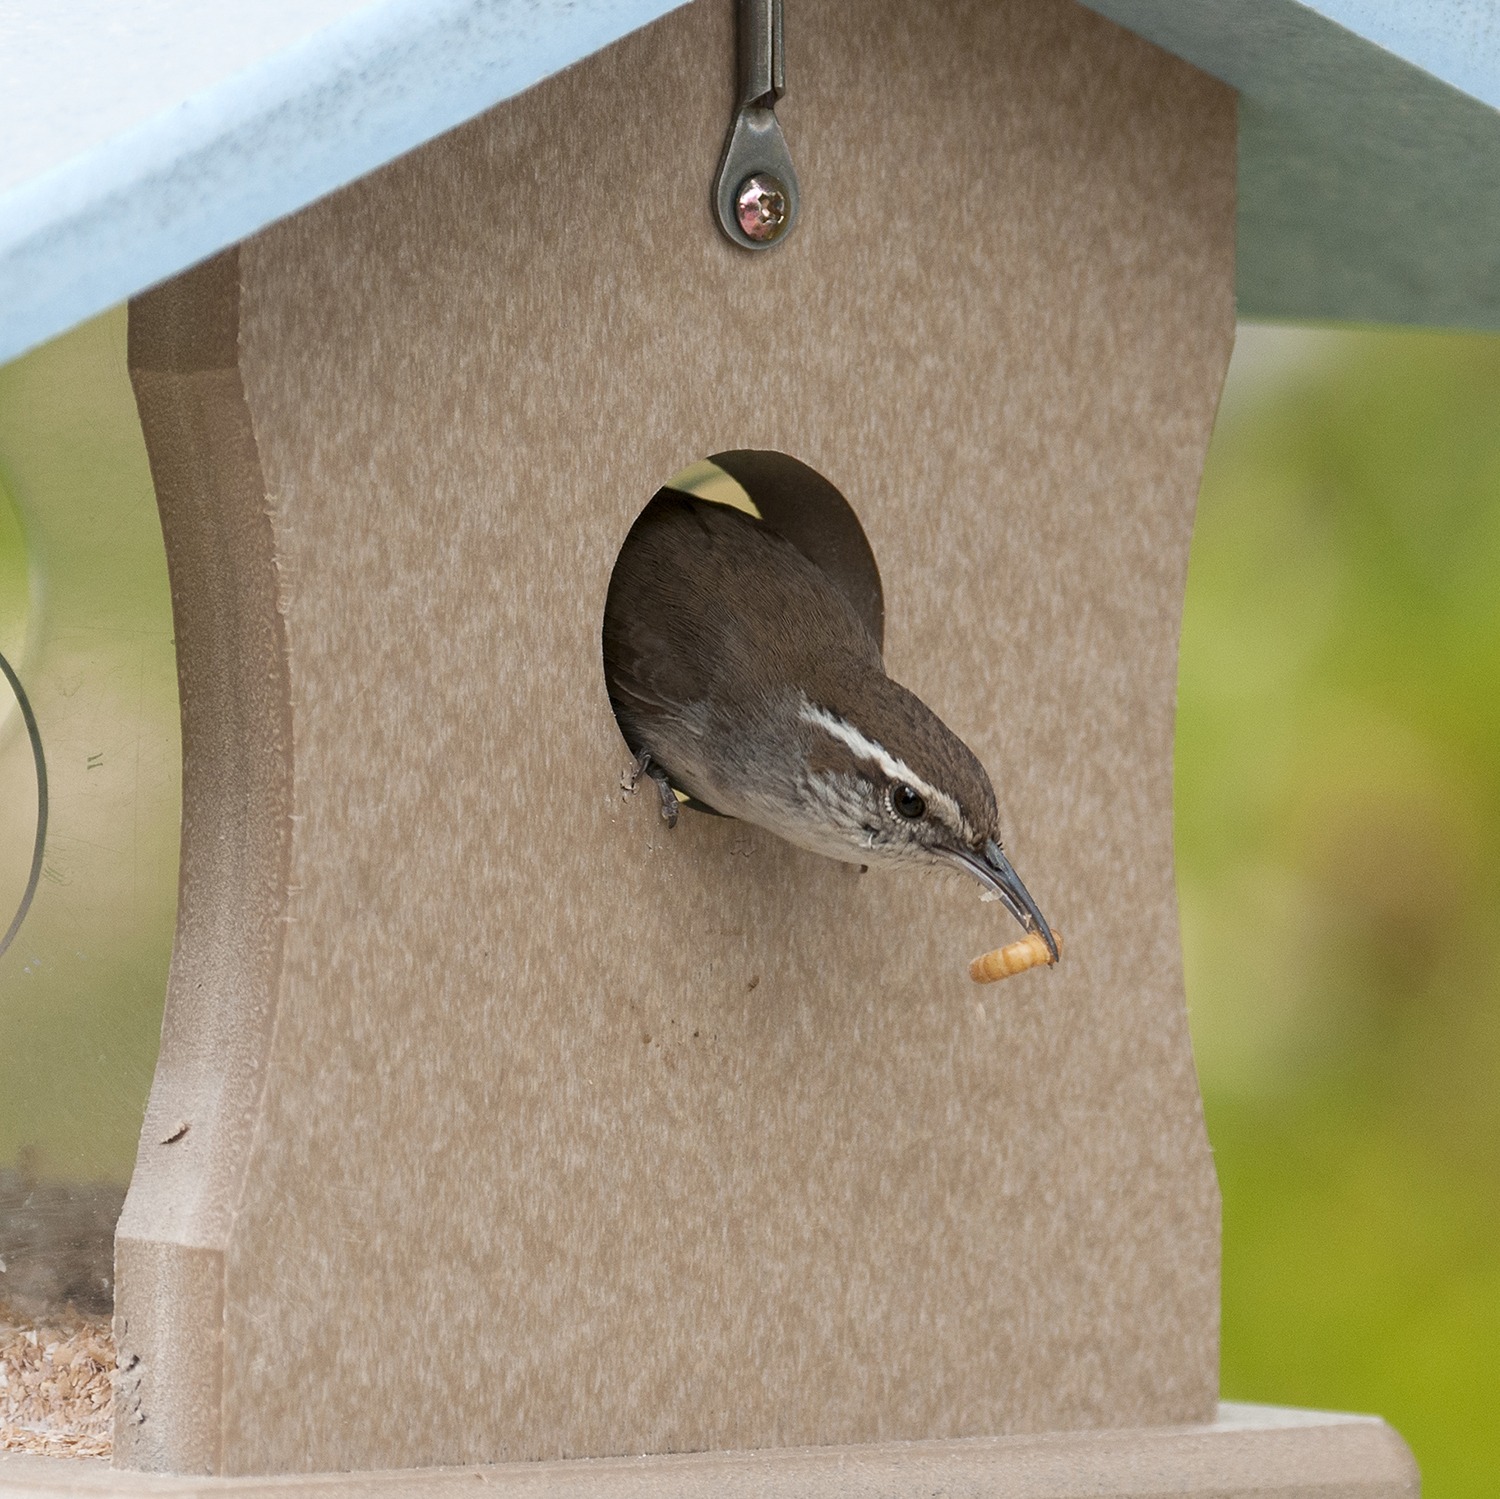 This Beverly Hills residing Bewick's Wren happily accepts tasty treats offered in a meal worm feeder.